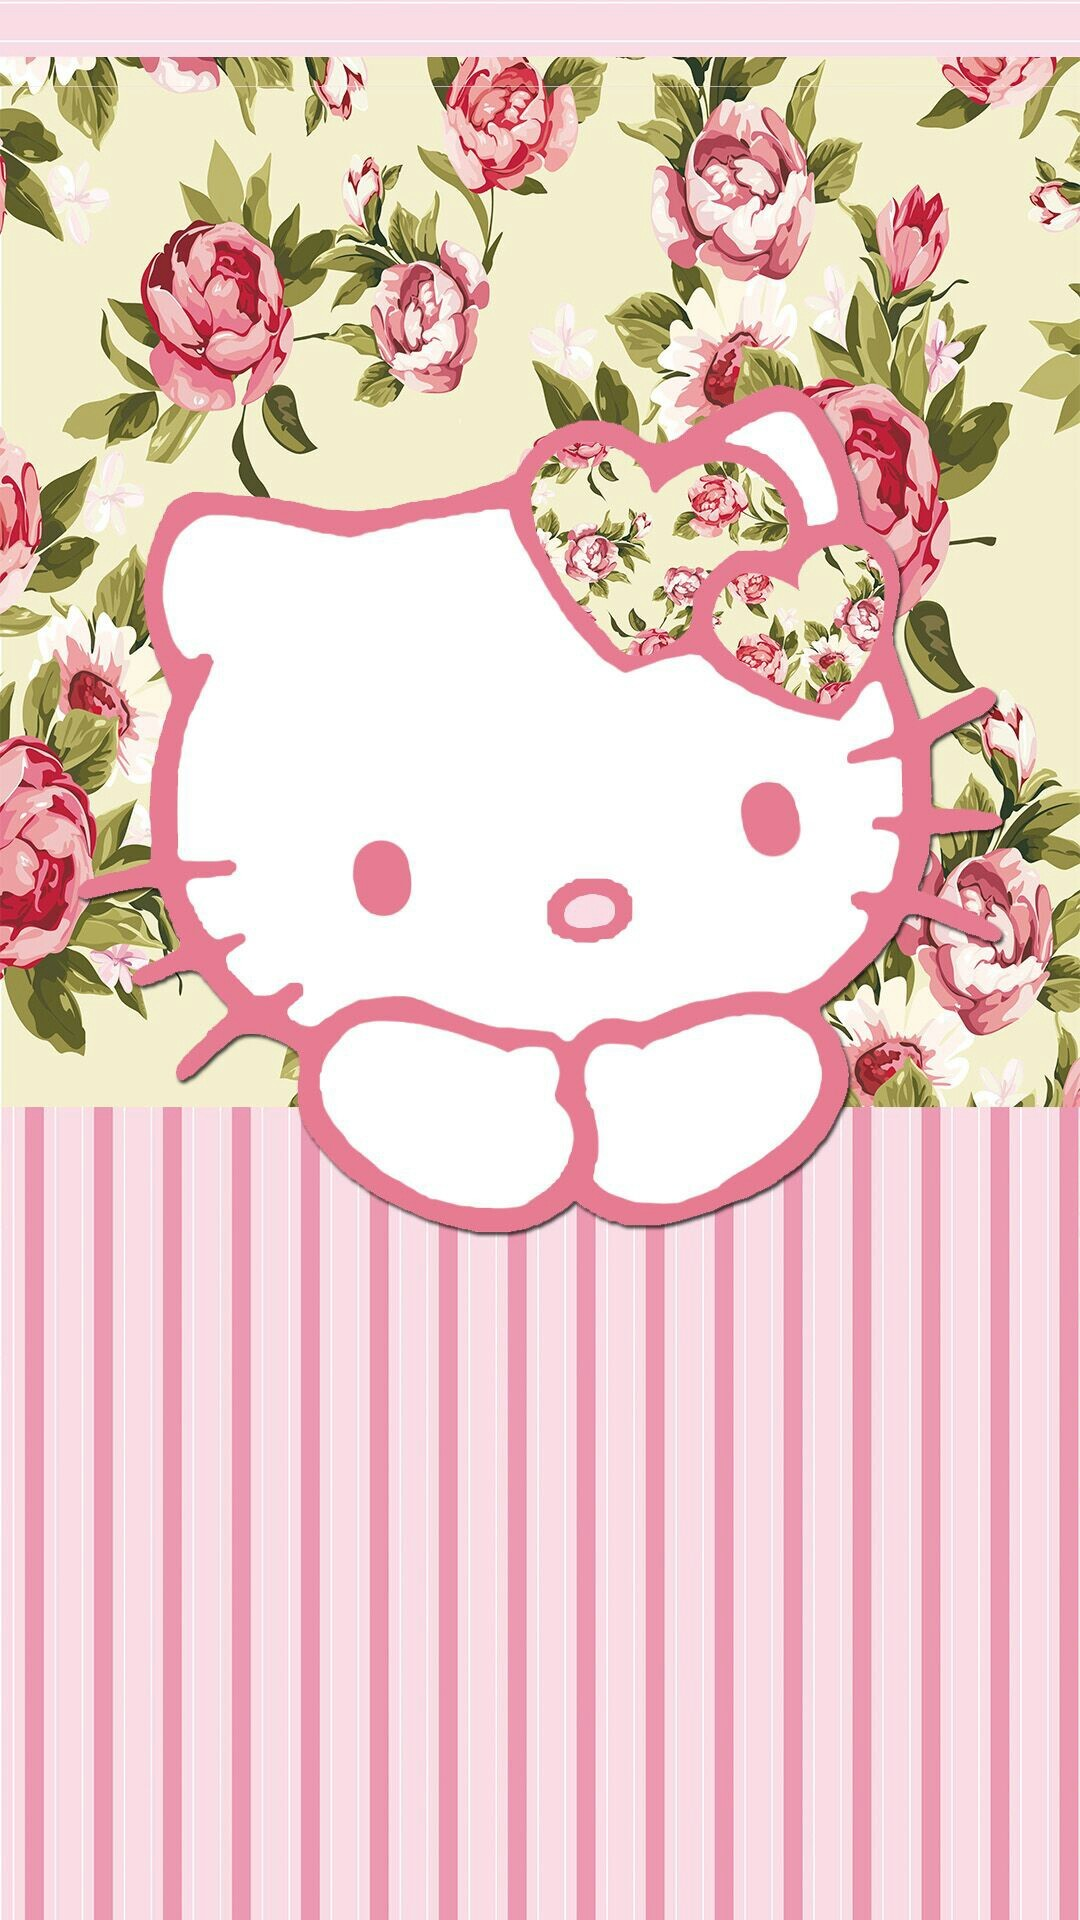 Hello - Hello Kitty Hd Wallpaper For Android Phone , HD Wallpaper & Backgrounds